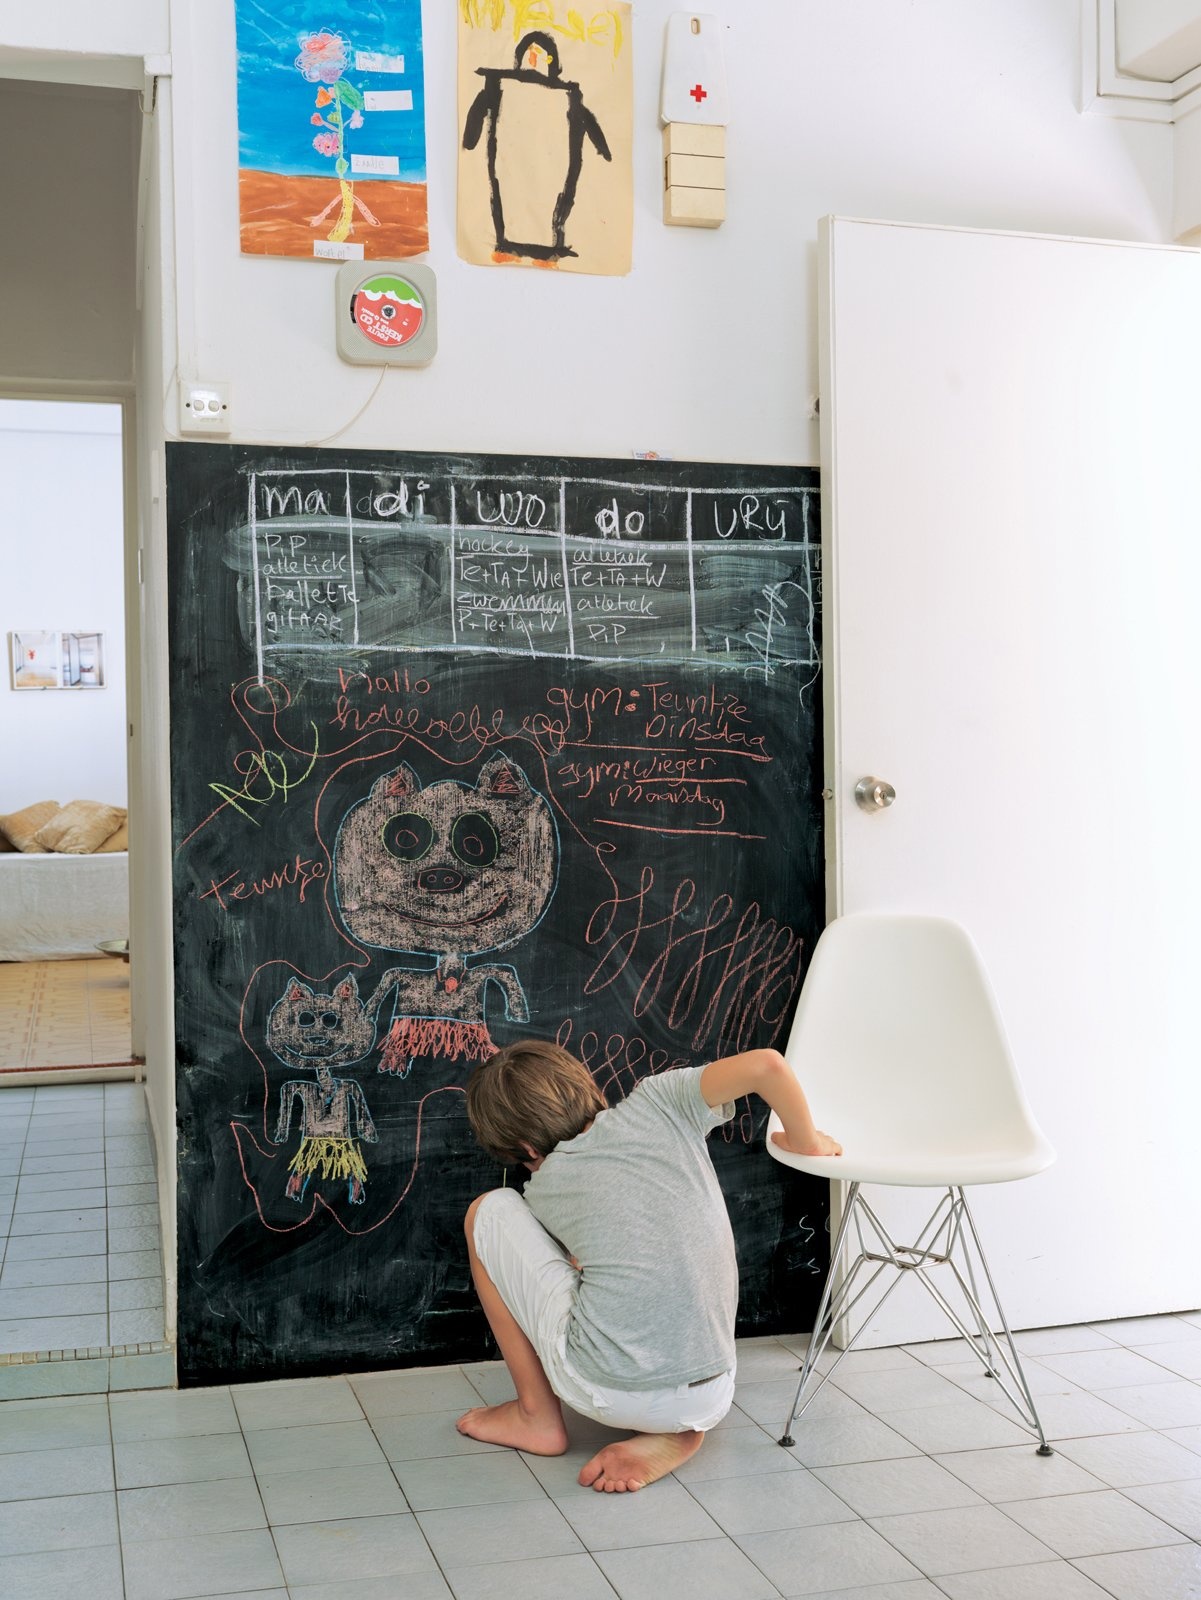 Living Room and Chair De Waart added a chalkboard to the kitchen for writing memos and for drawing, as Tammo does here.  Chalkboard Walls in Kitchens and Kids' Rooms by Jaime Gillin from A Family Moves from Netherlands to Singapore